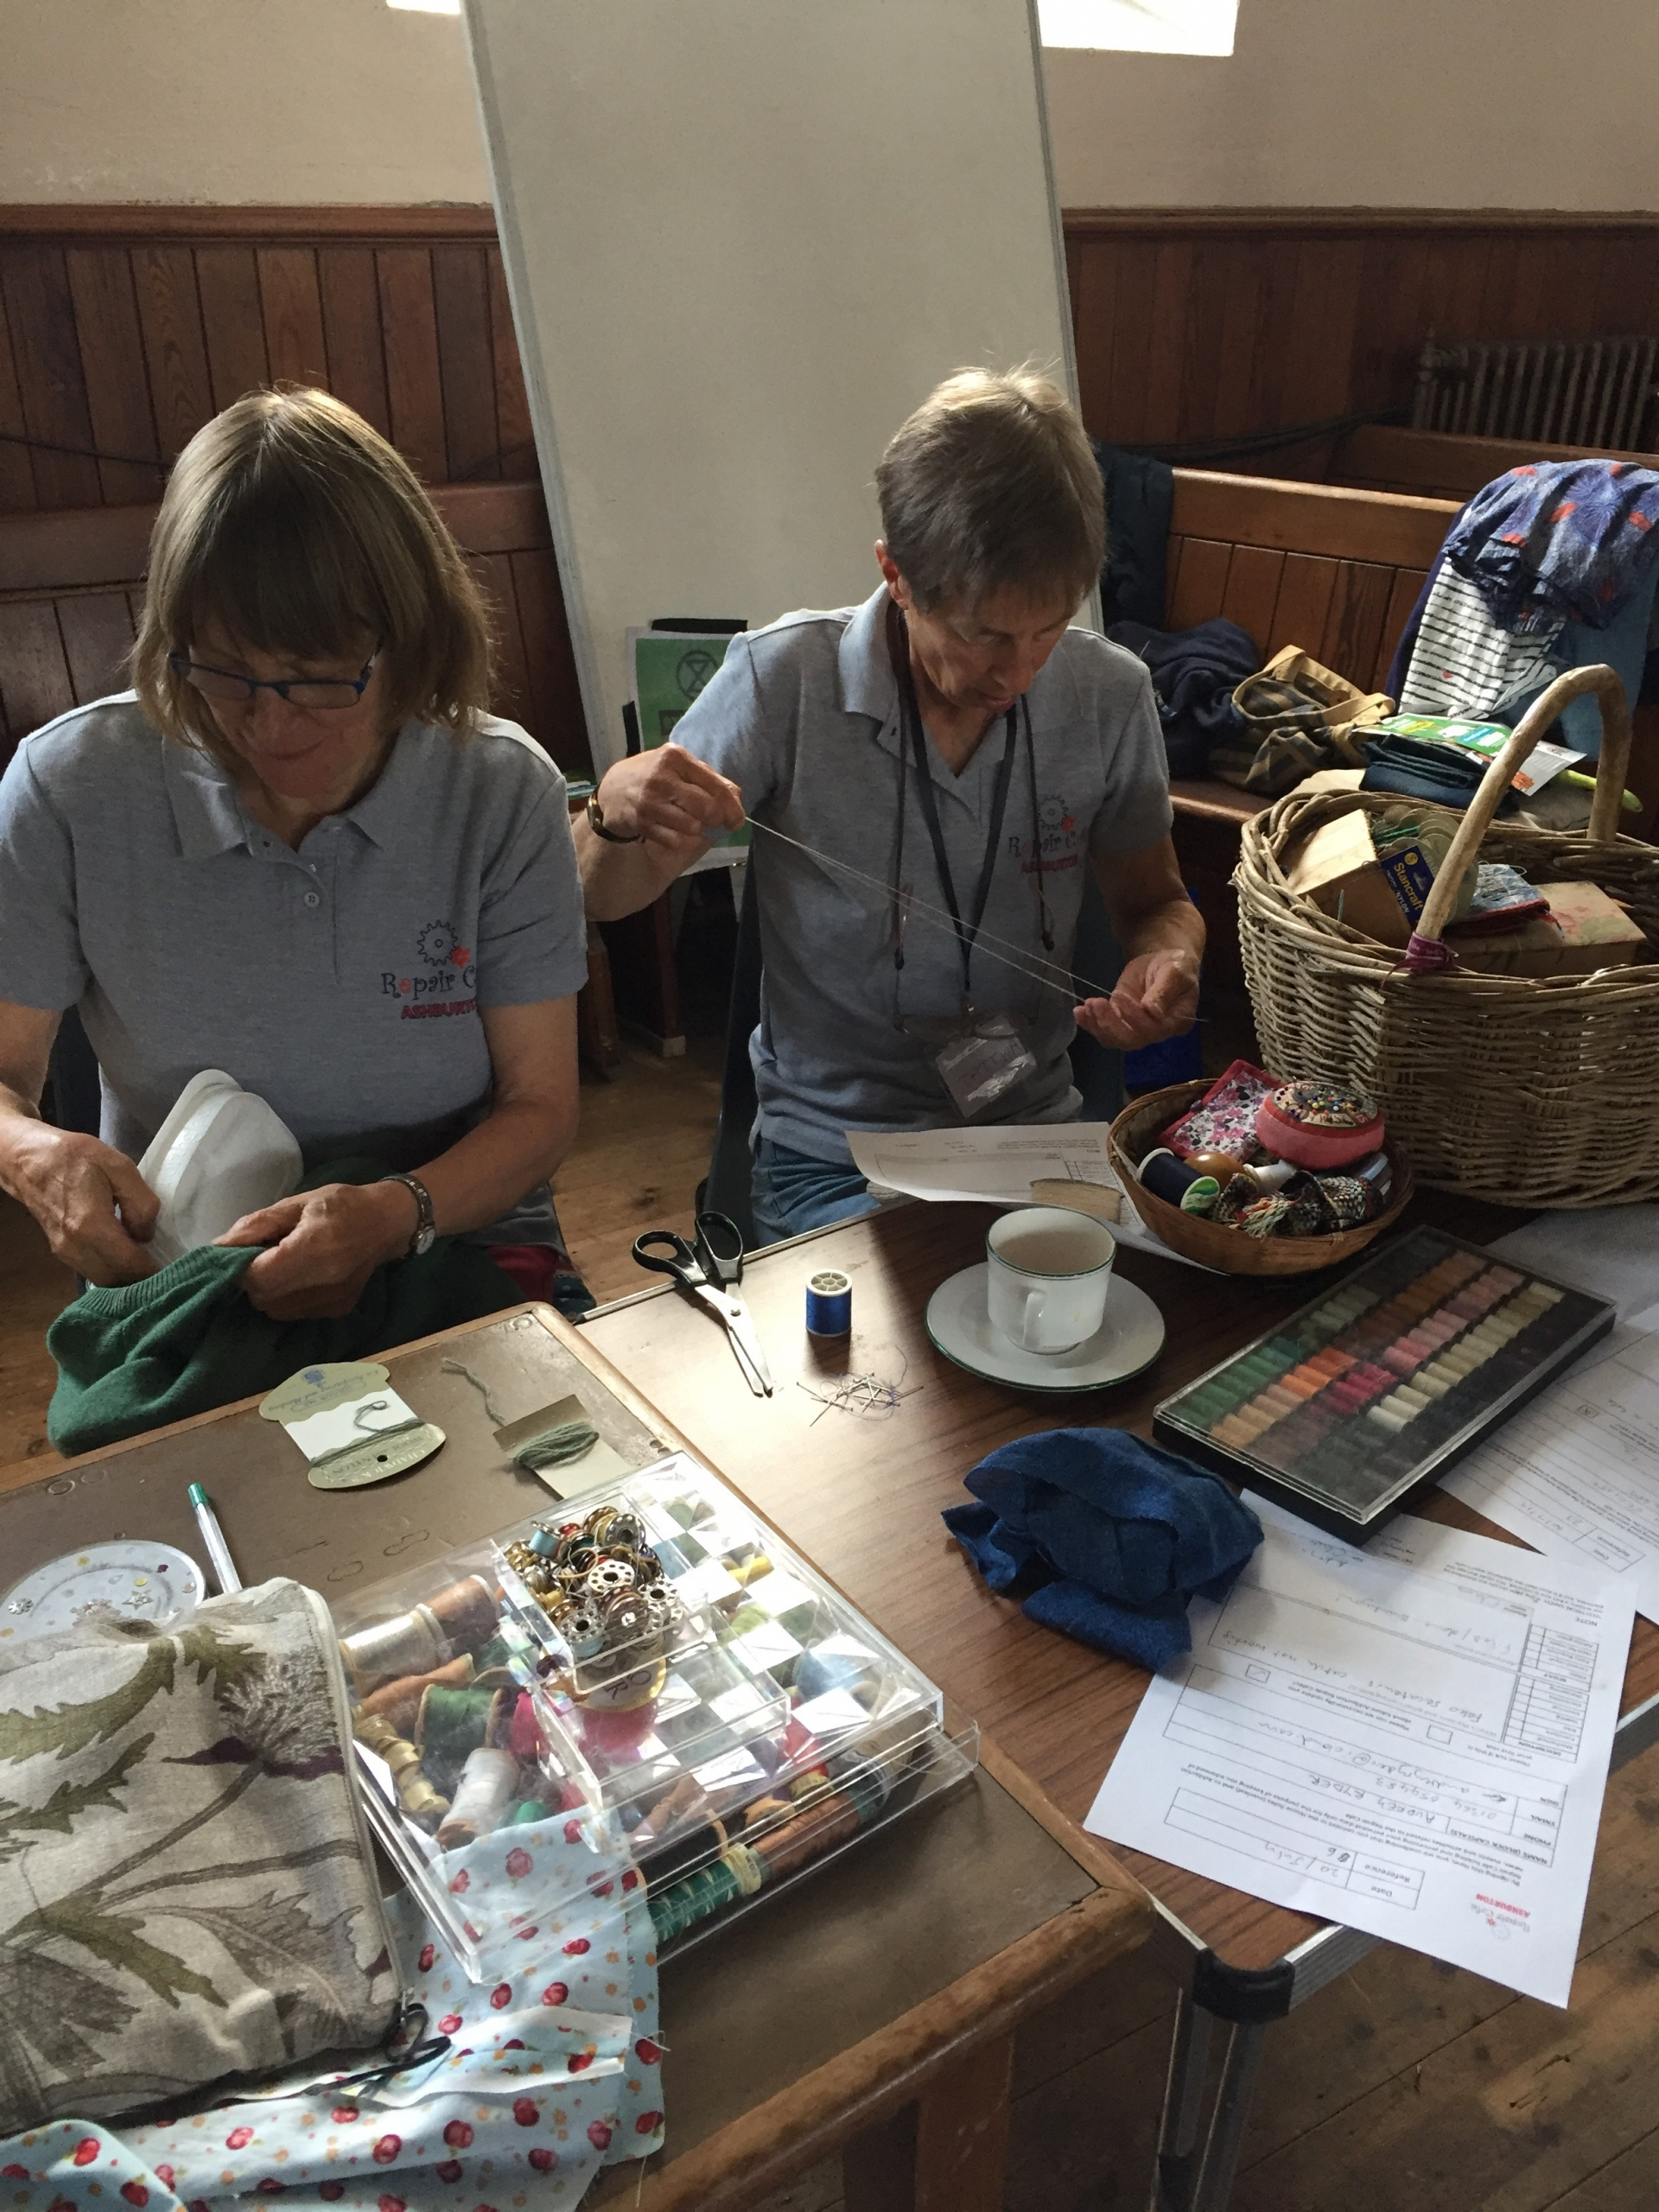 Two repair cafe volunteers at a table sewing.